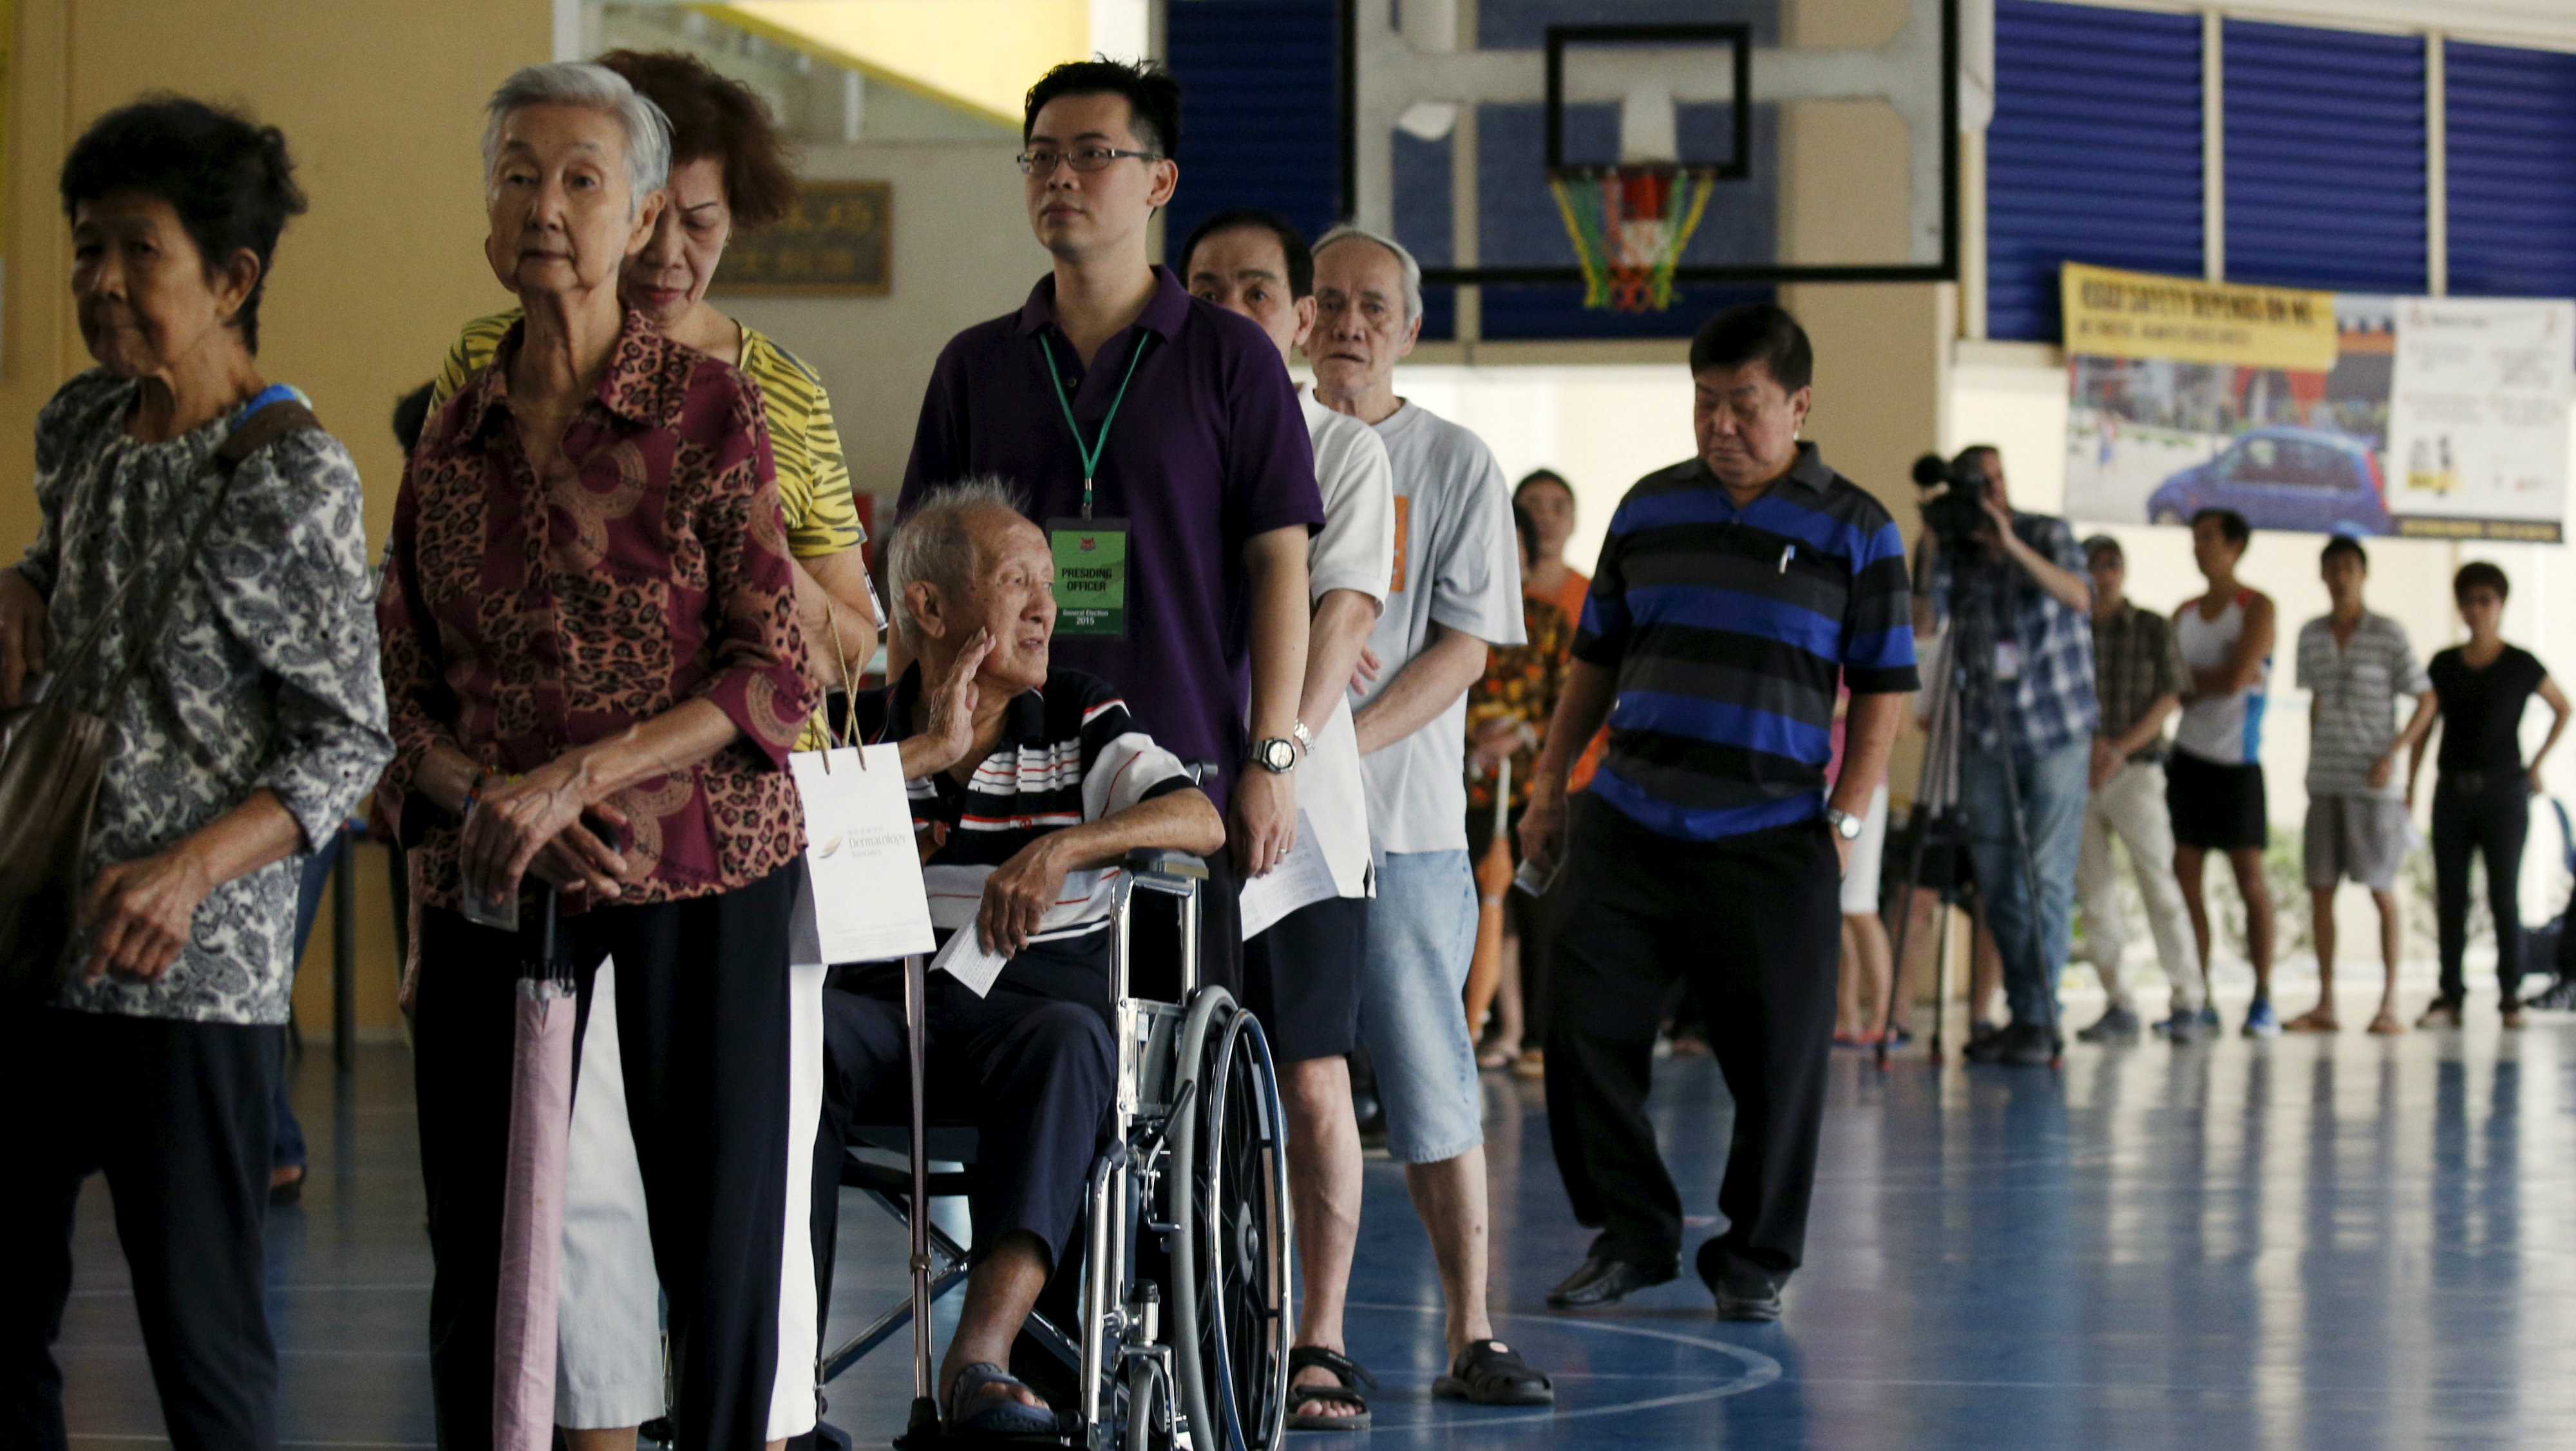 Voters queue to cast their ballots during the general election at a polling center in Singapore September 11, 2015